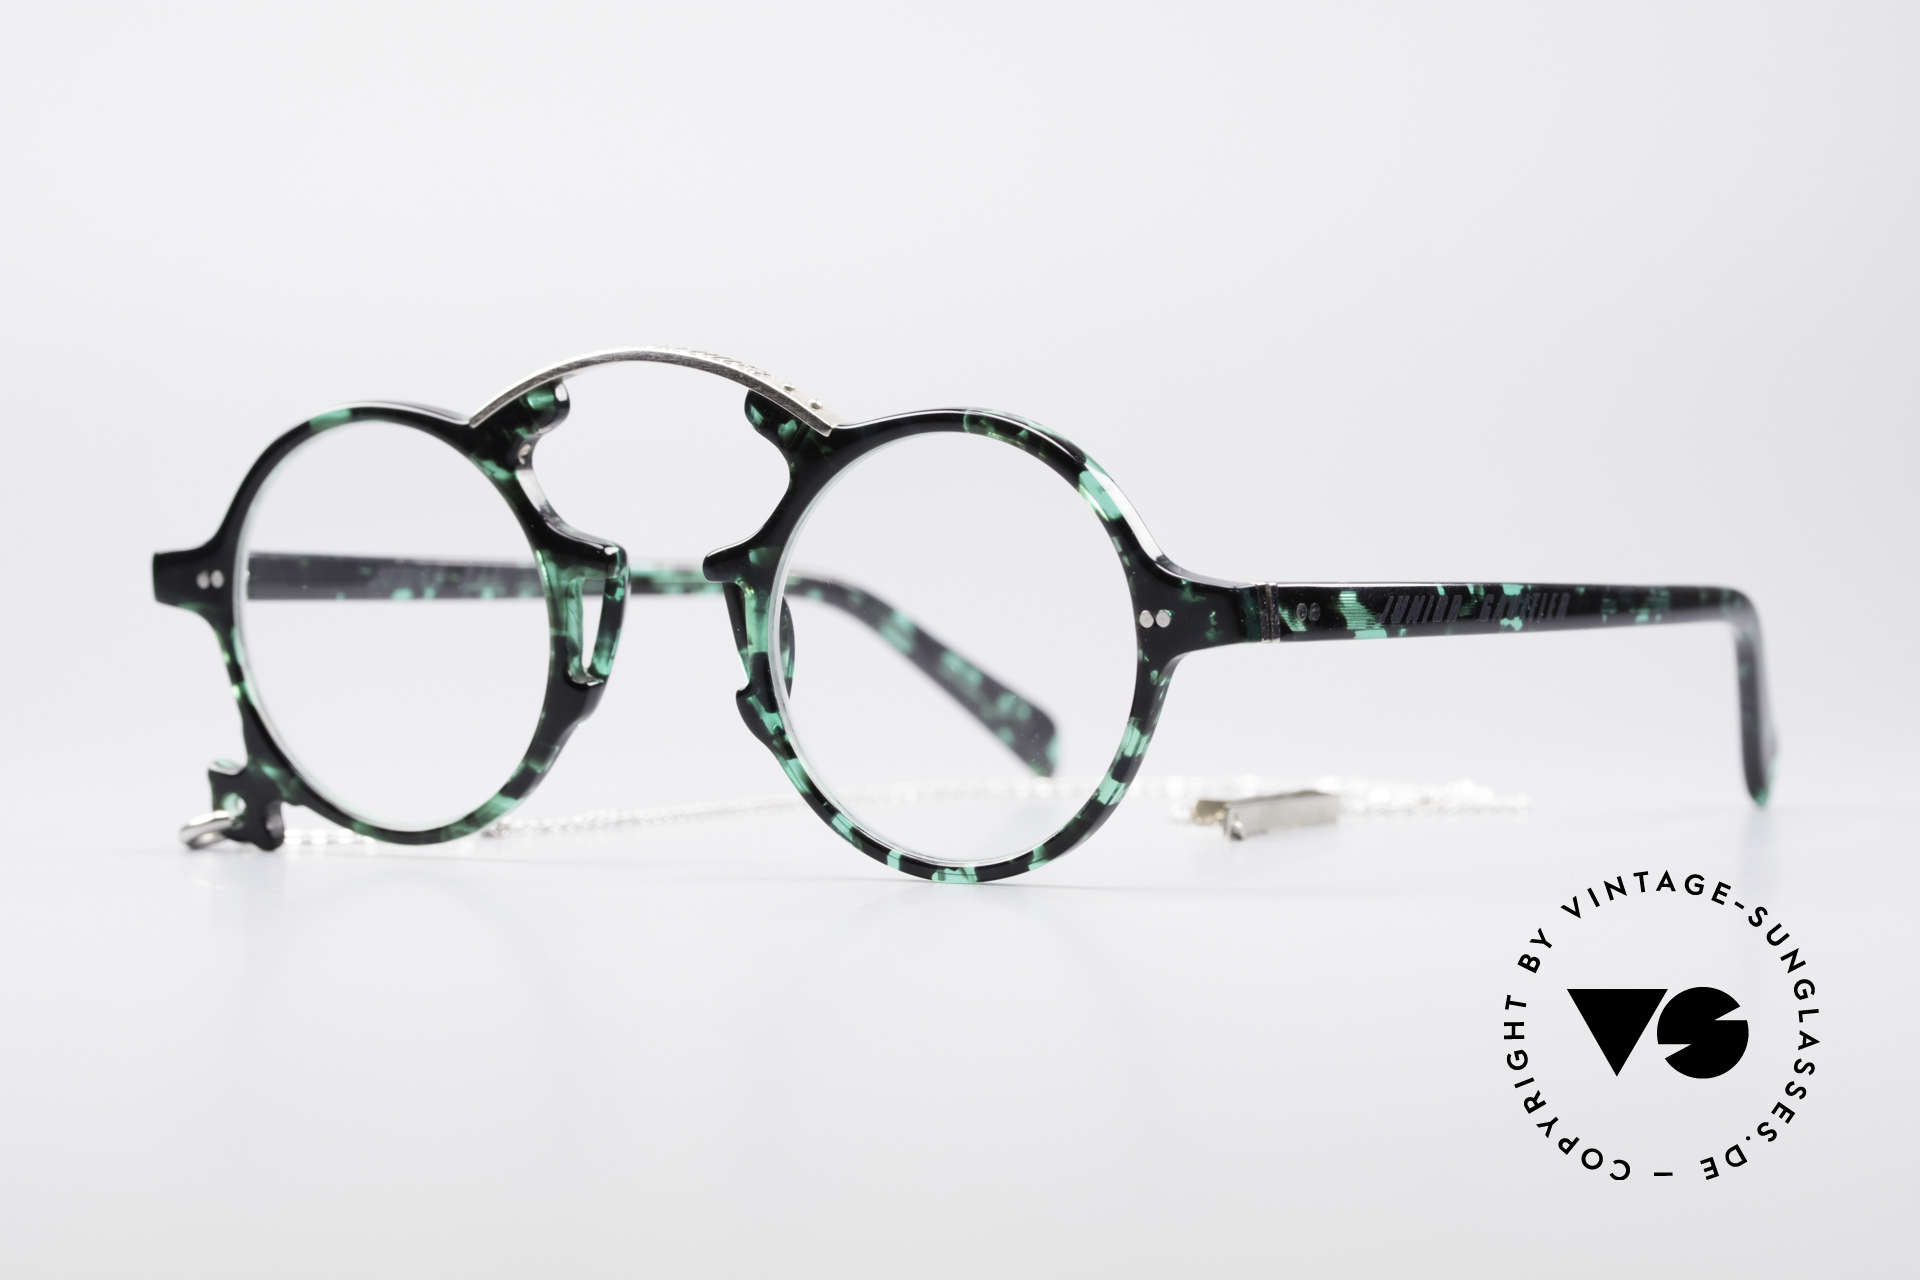 Jean Paul Gaultier 58-0271 90's Steampunk Eyeglasses, true designer frame with unique frame coloring, Made for Men and Women